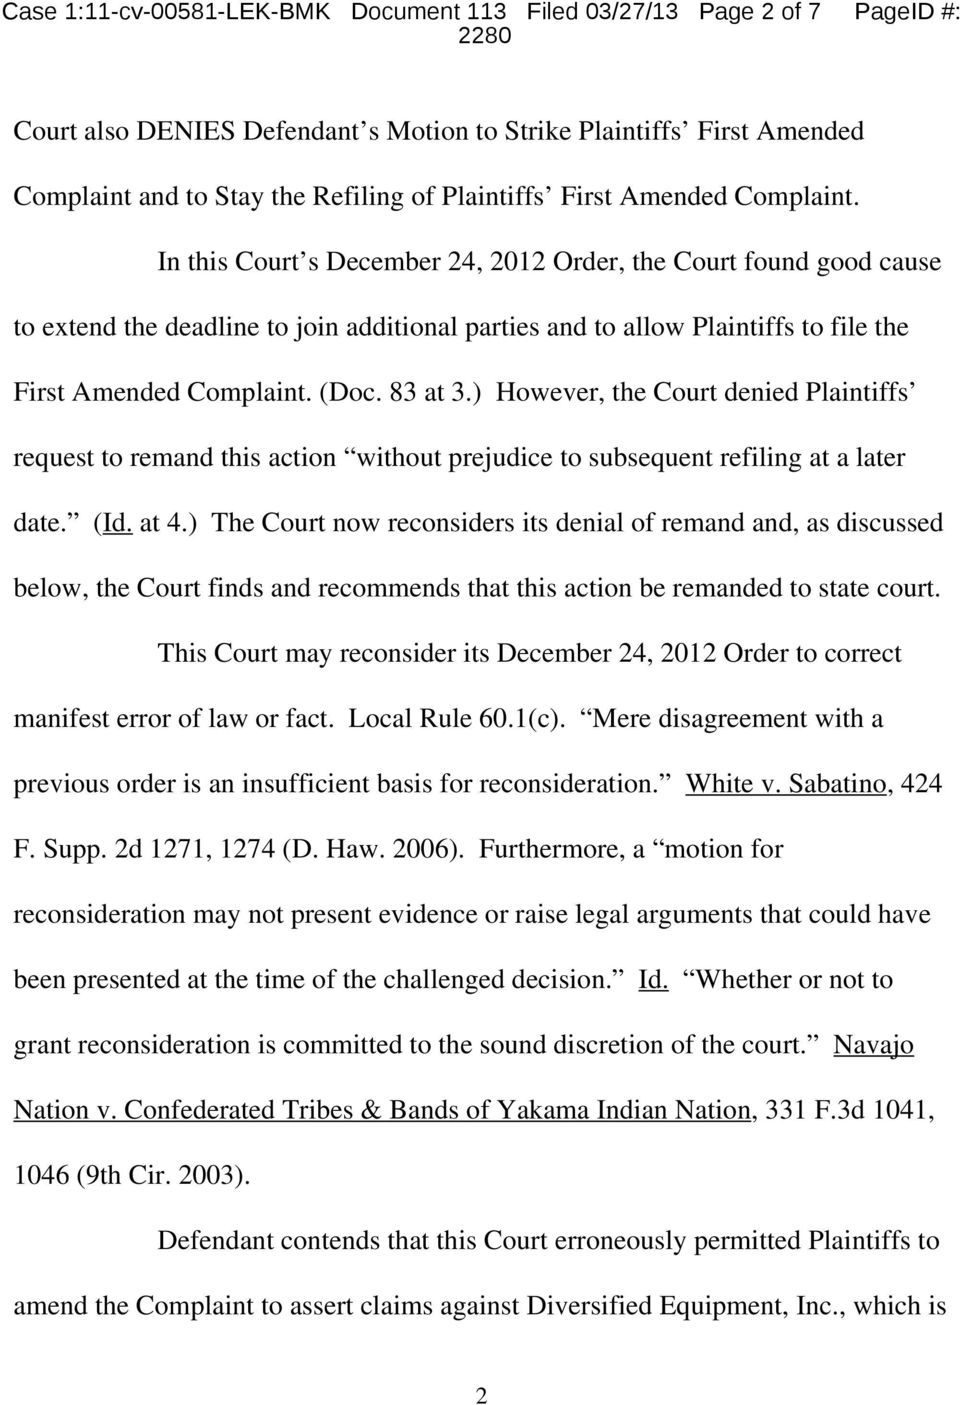 In this Court s December 24, 2012 Order, the Court found good cause to extend the deadline to join additional parties and to allow Plaintiffs to file the First Amended Complaint. (Doc. 83 at 3.